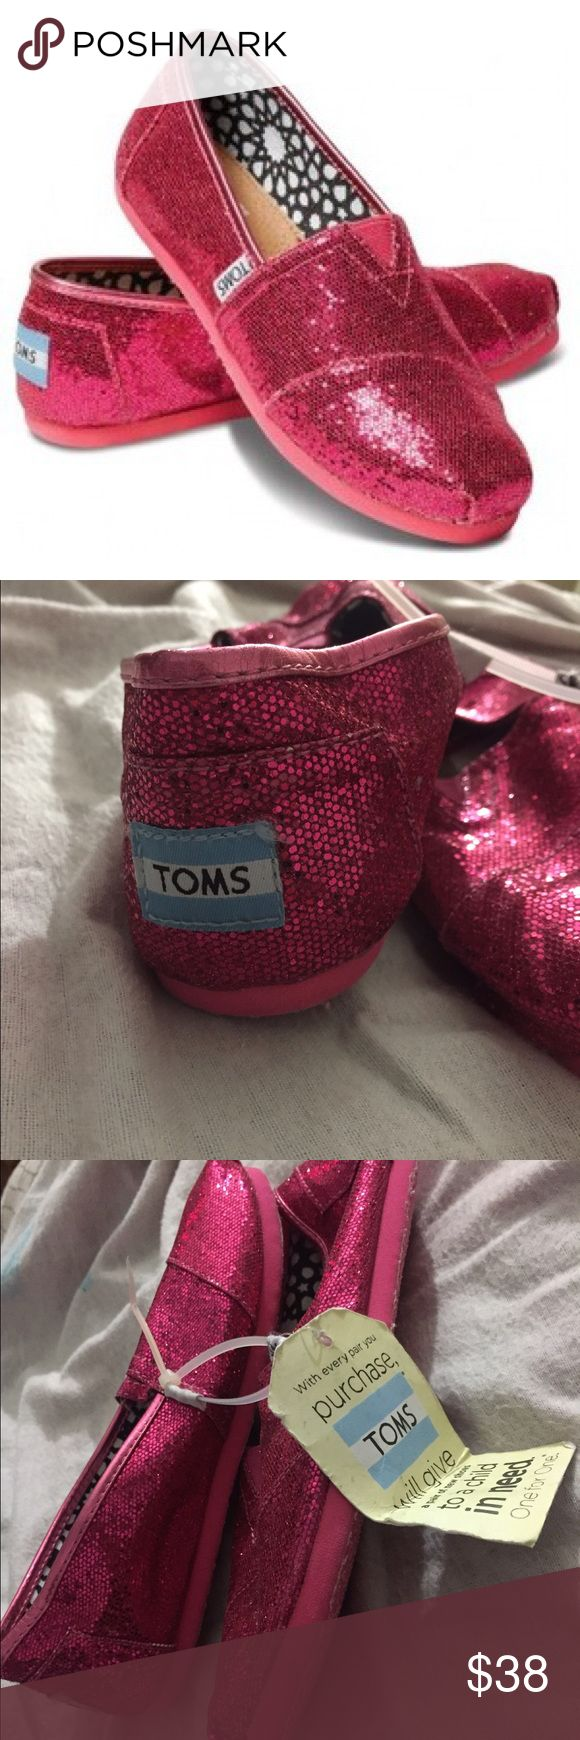 New Youth 5.5 pink glitter TOMS Youth 5.5 pink glitter TOMS, new with tag TOMS Shoes Slippers